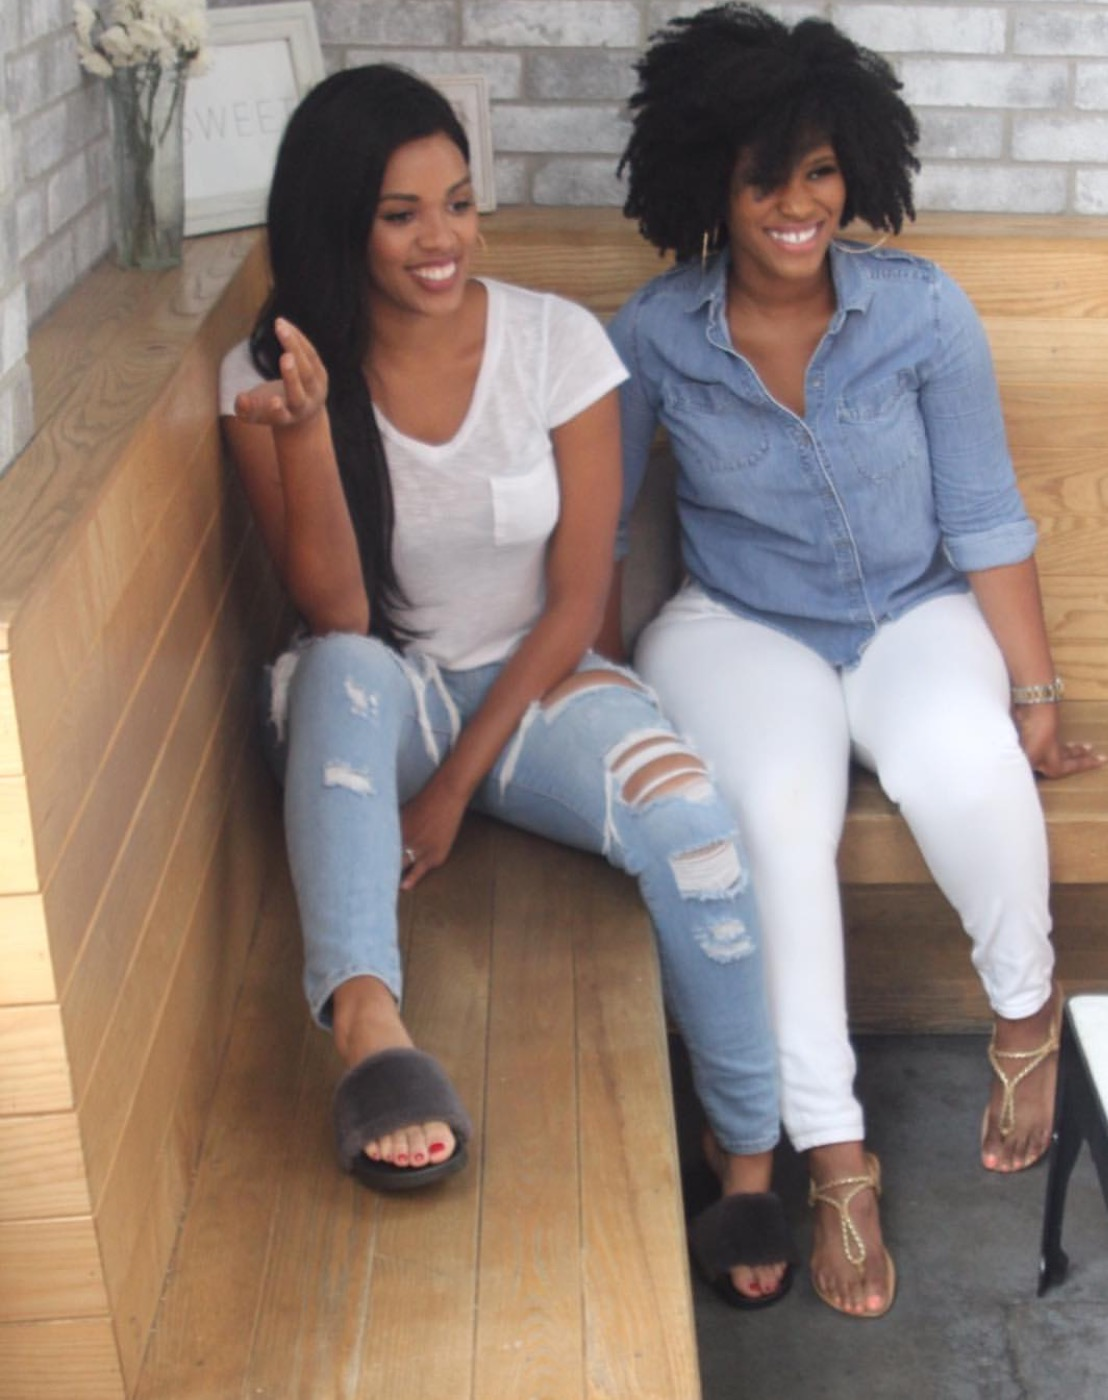 26. Krystal & Christina Check-In: Turning Points